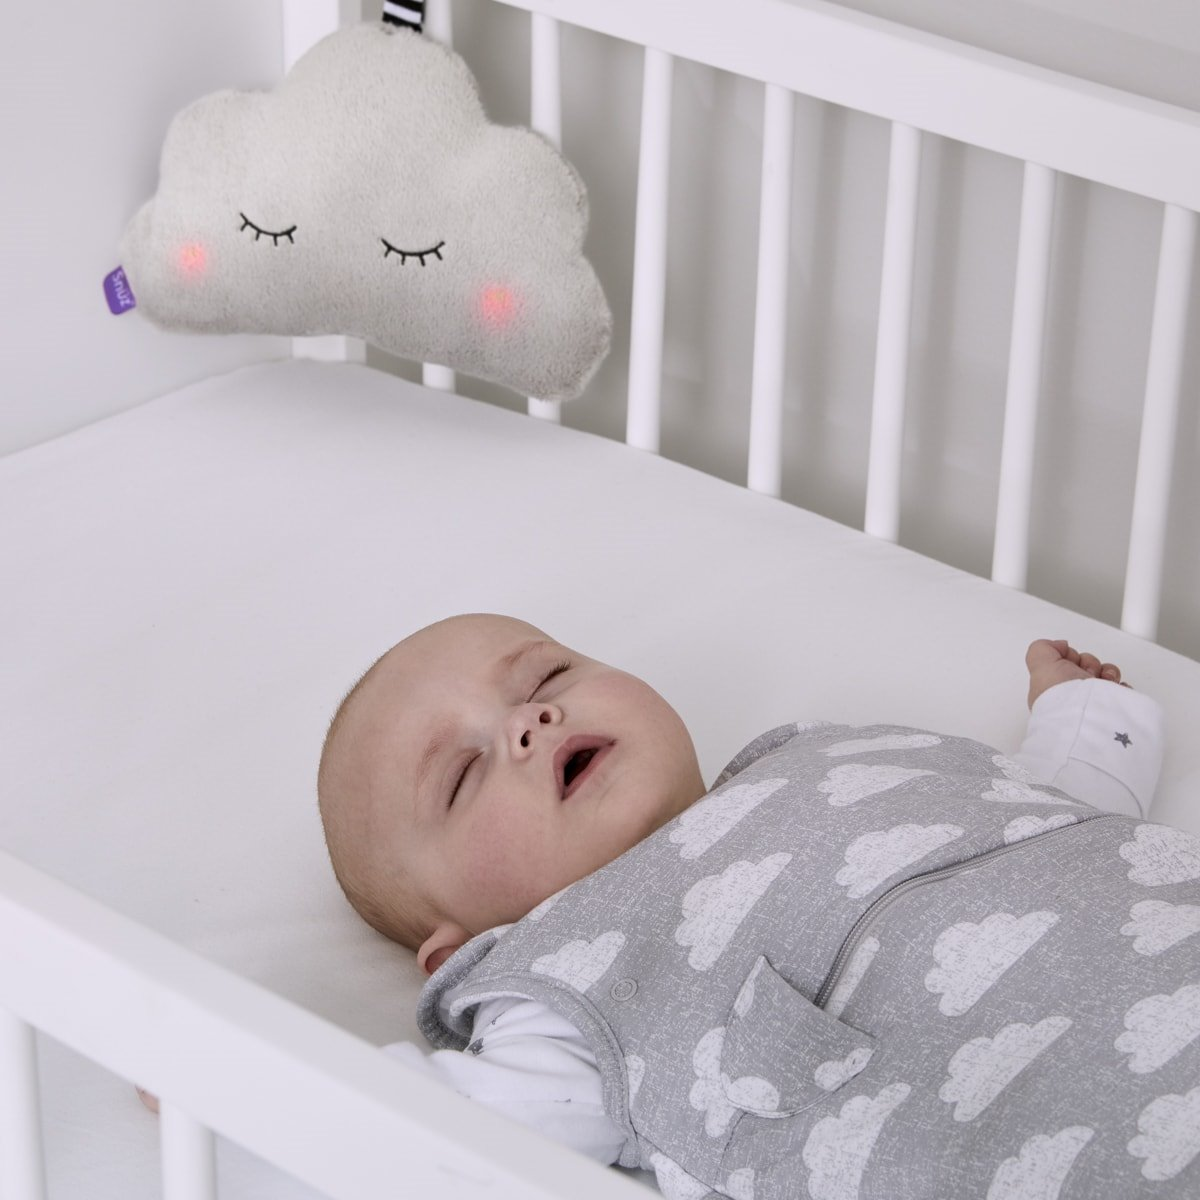 What Can Baby Sleep In Next To Bed Snuzcloud Baby Sleep Aid